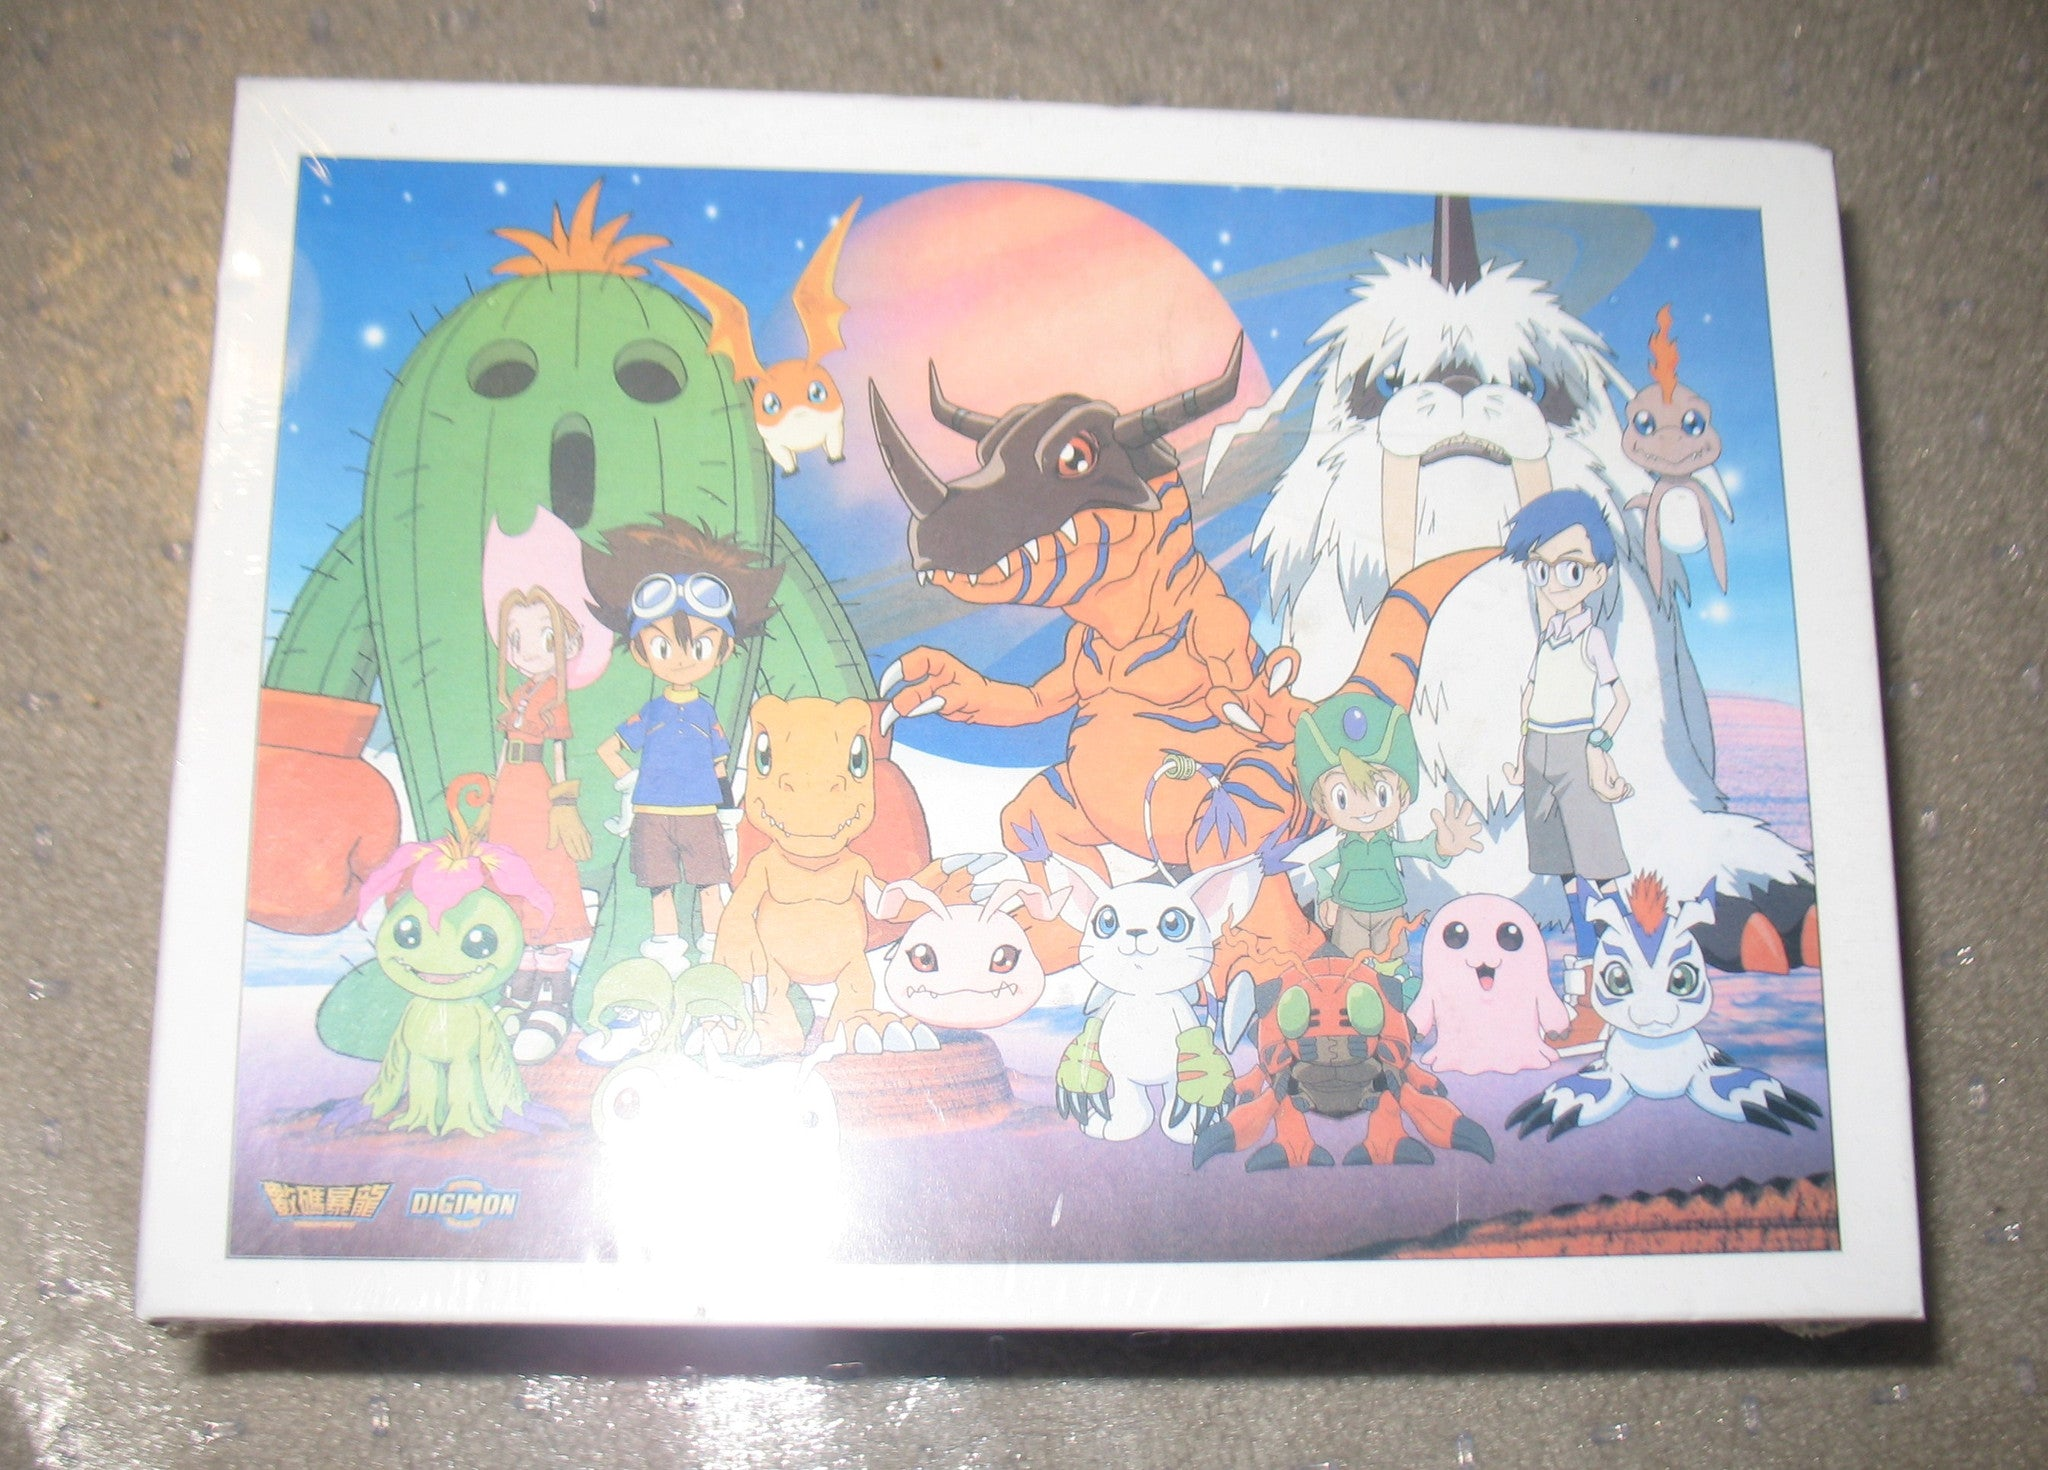 G036 Digimon Digital Monsters Anime Puzzle Brand New Sealed 300 pcs.